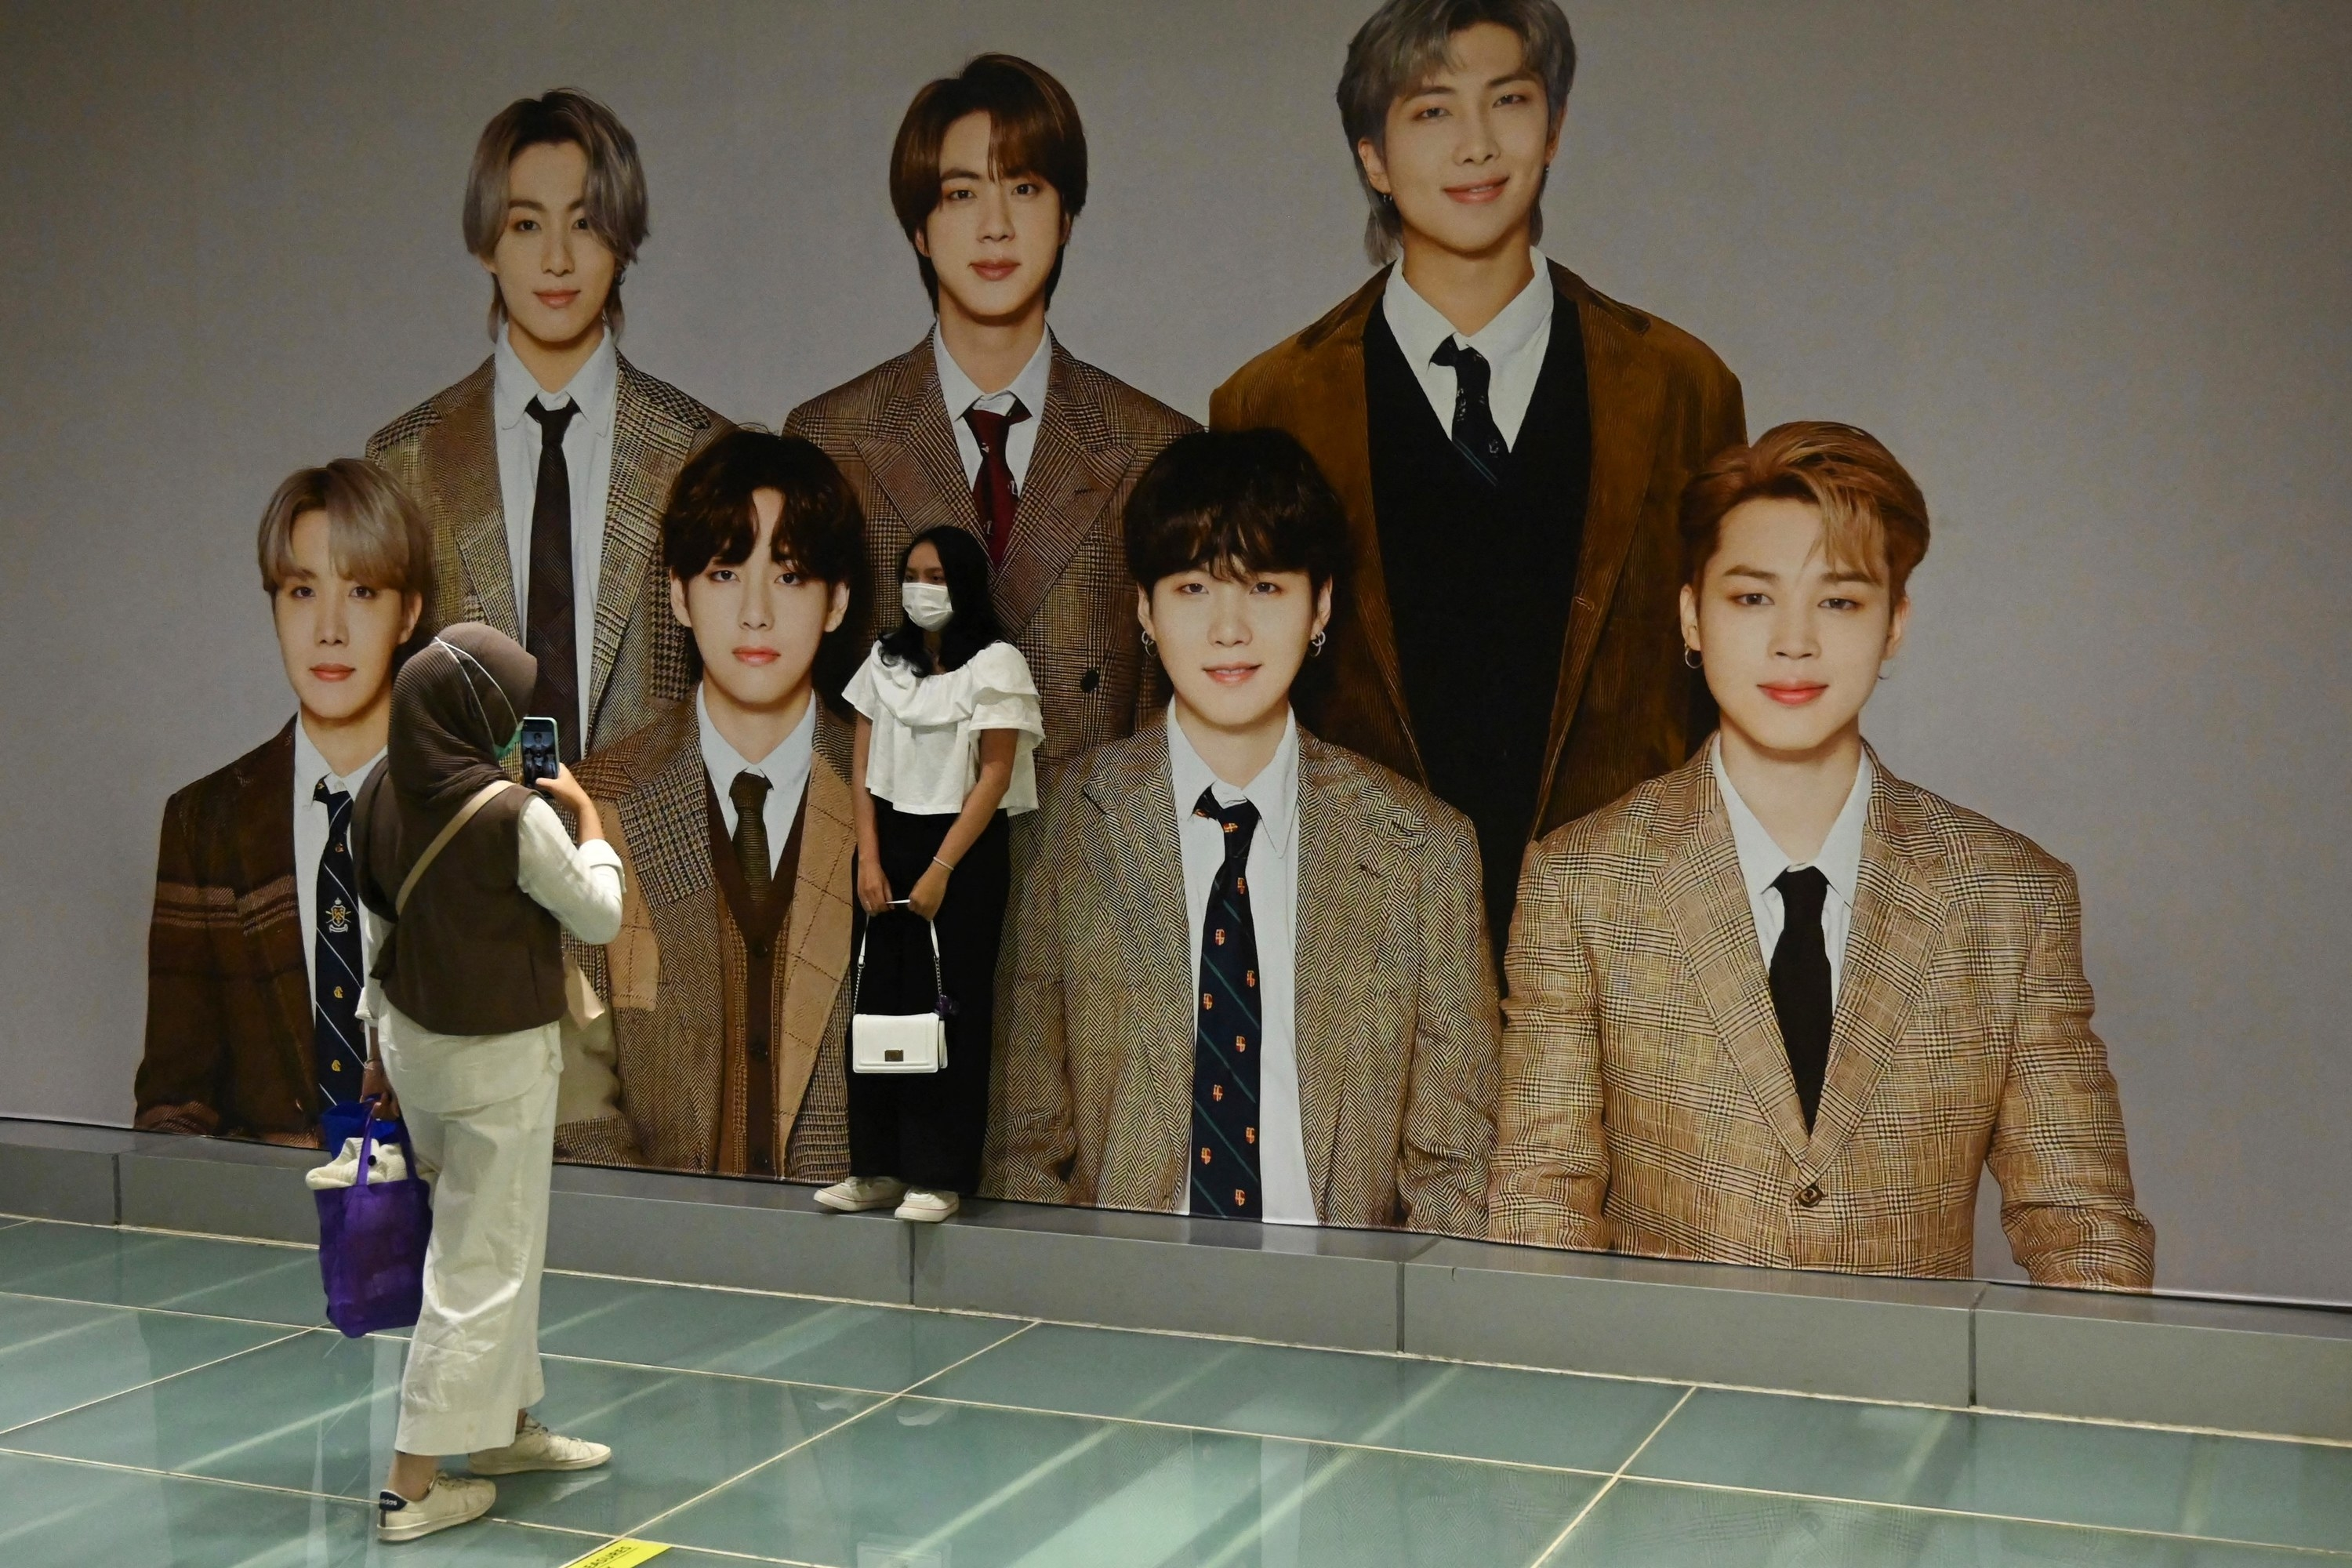 A person taking a photo of someone else as they pose next to a mural of BTS